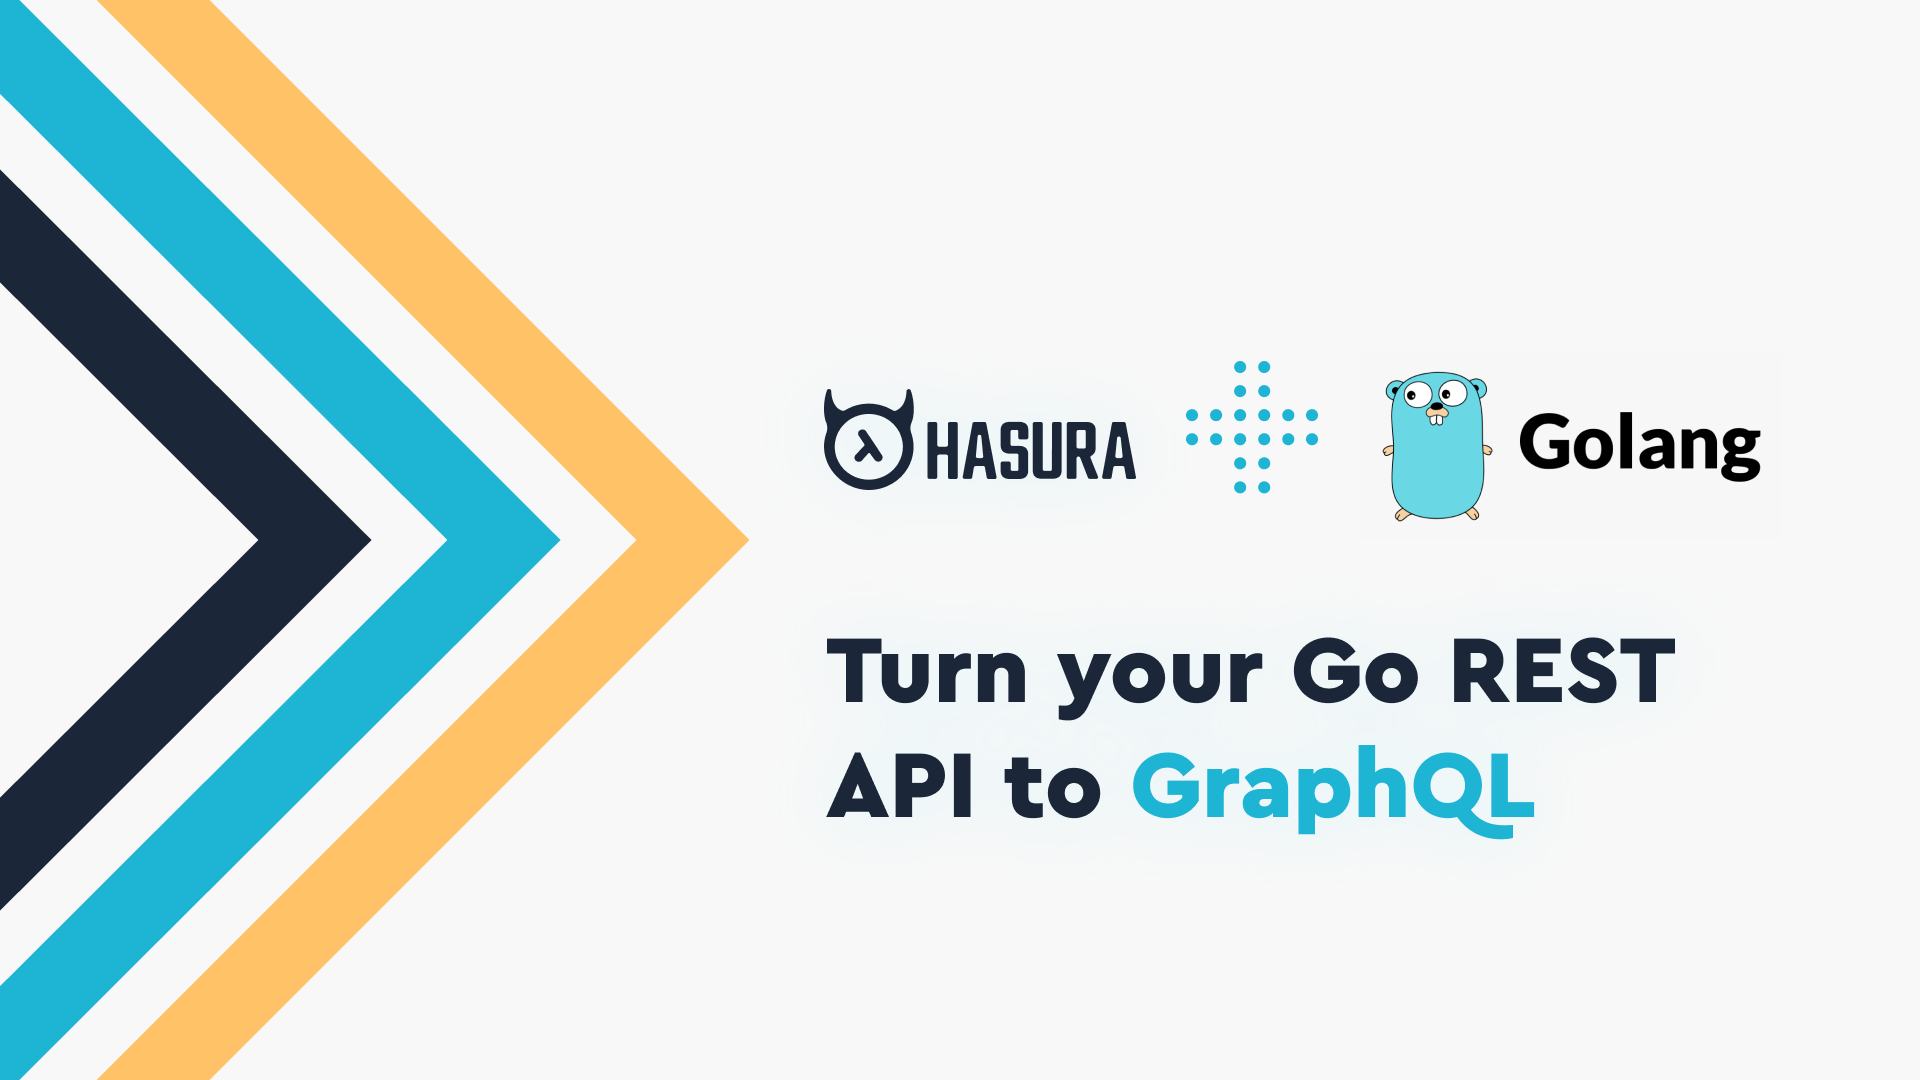 Turn your Go REST API to GraphQL using Hasura Actions